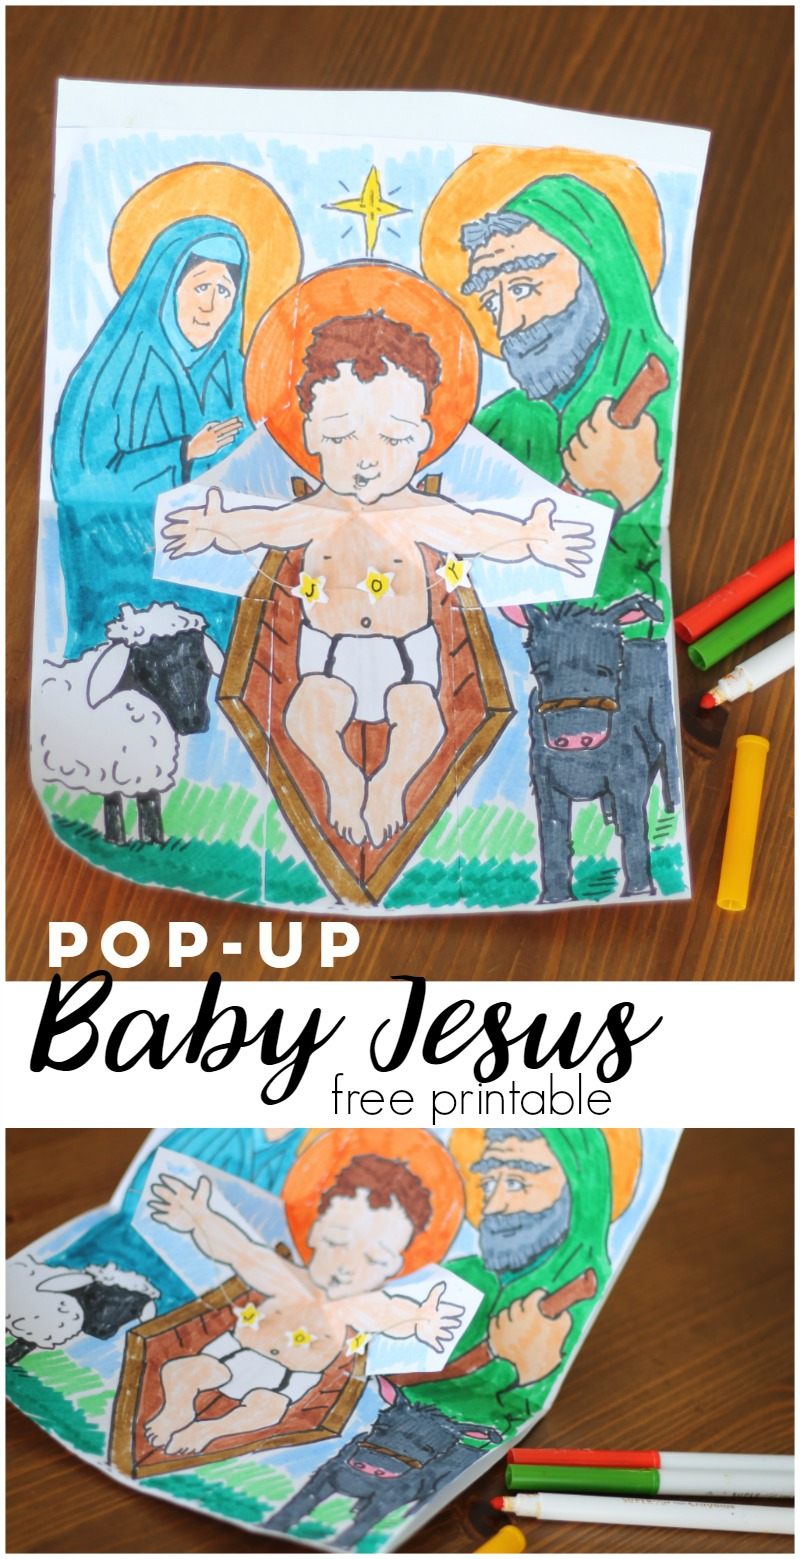 pop-up-baby-jesus-free-printable-for-christmas